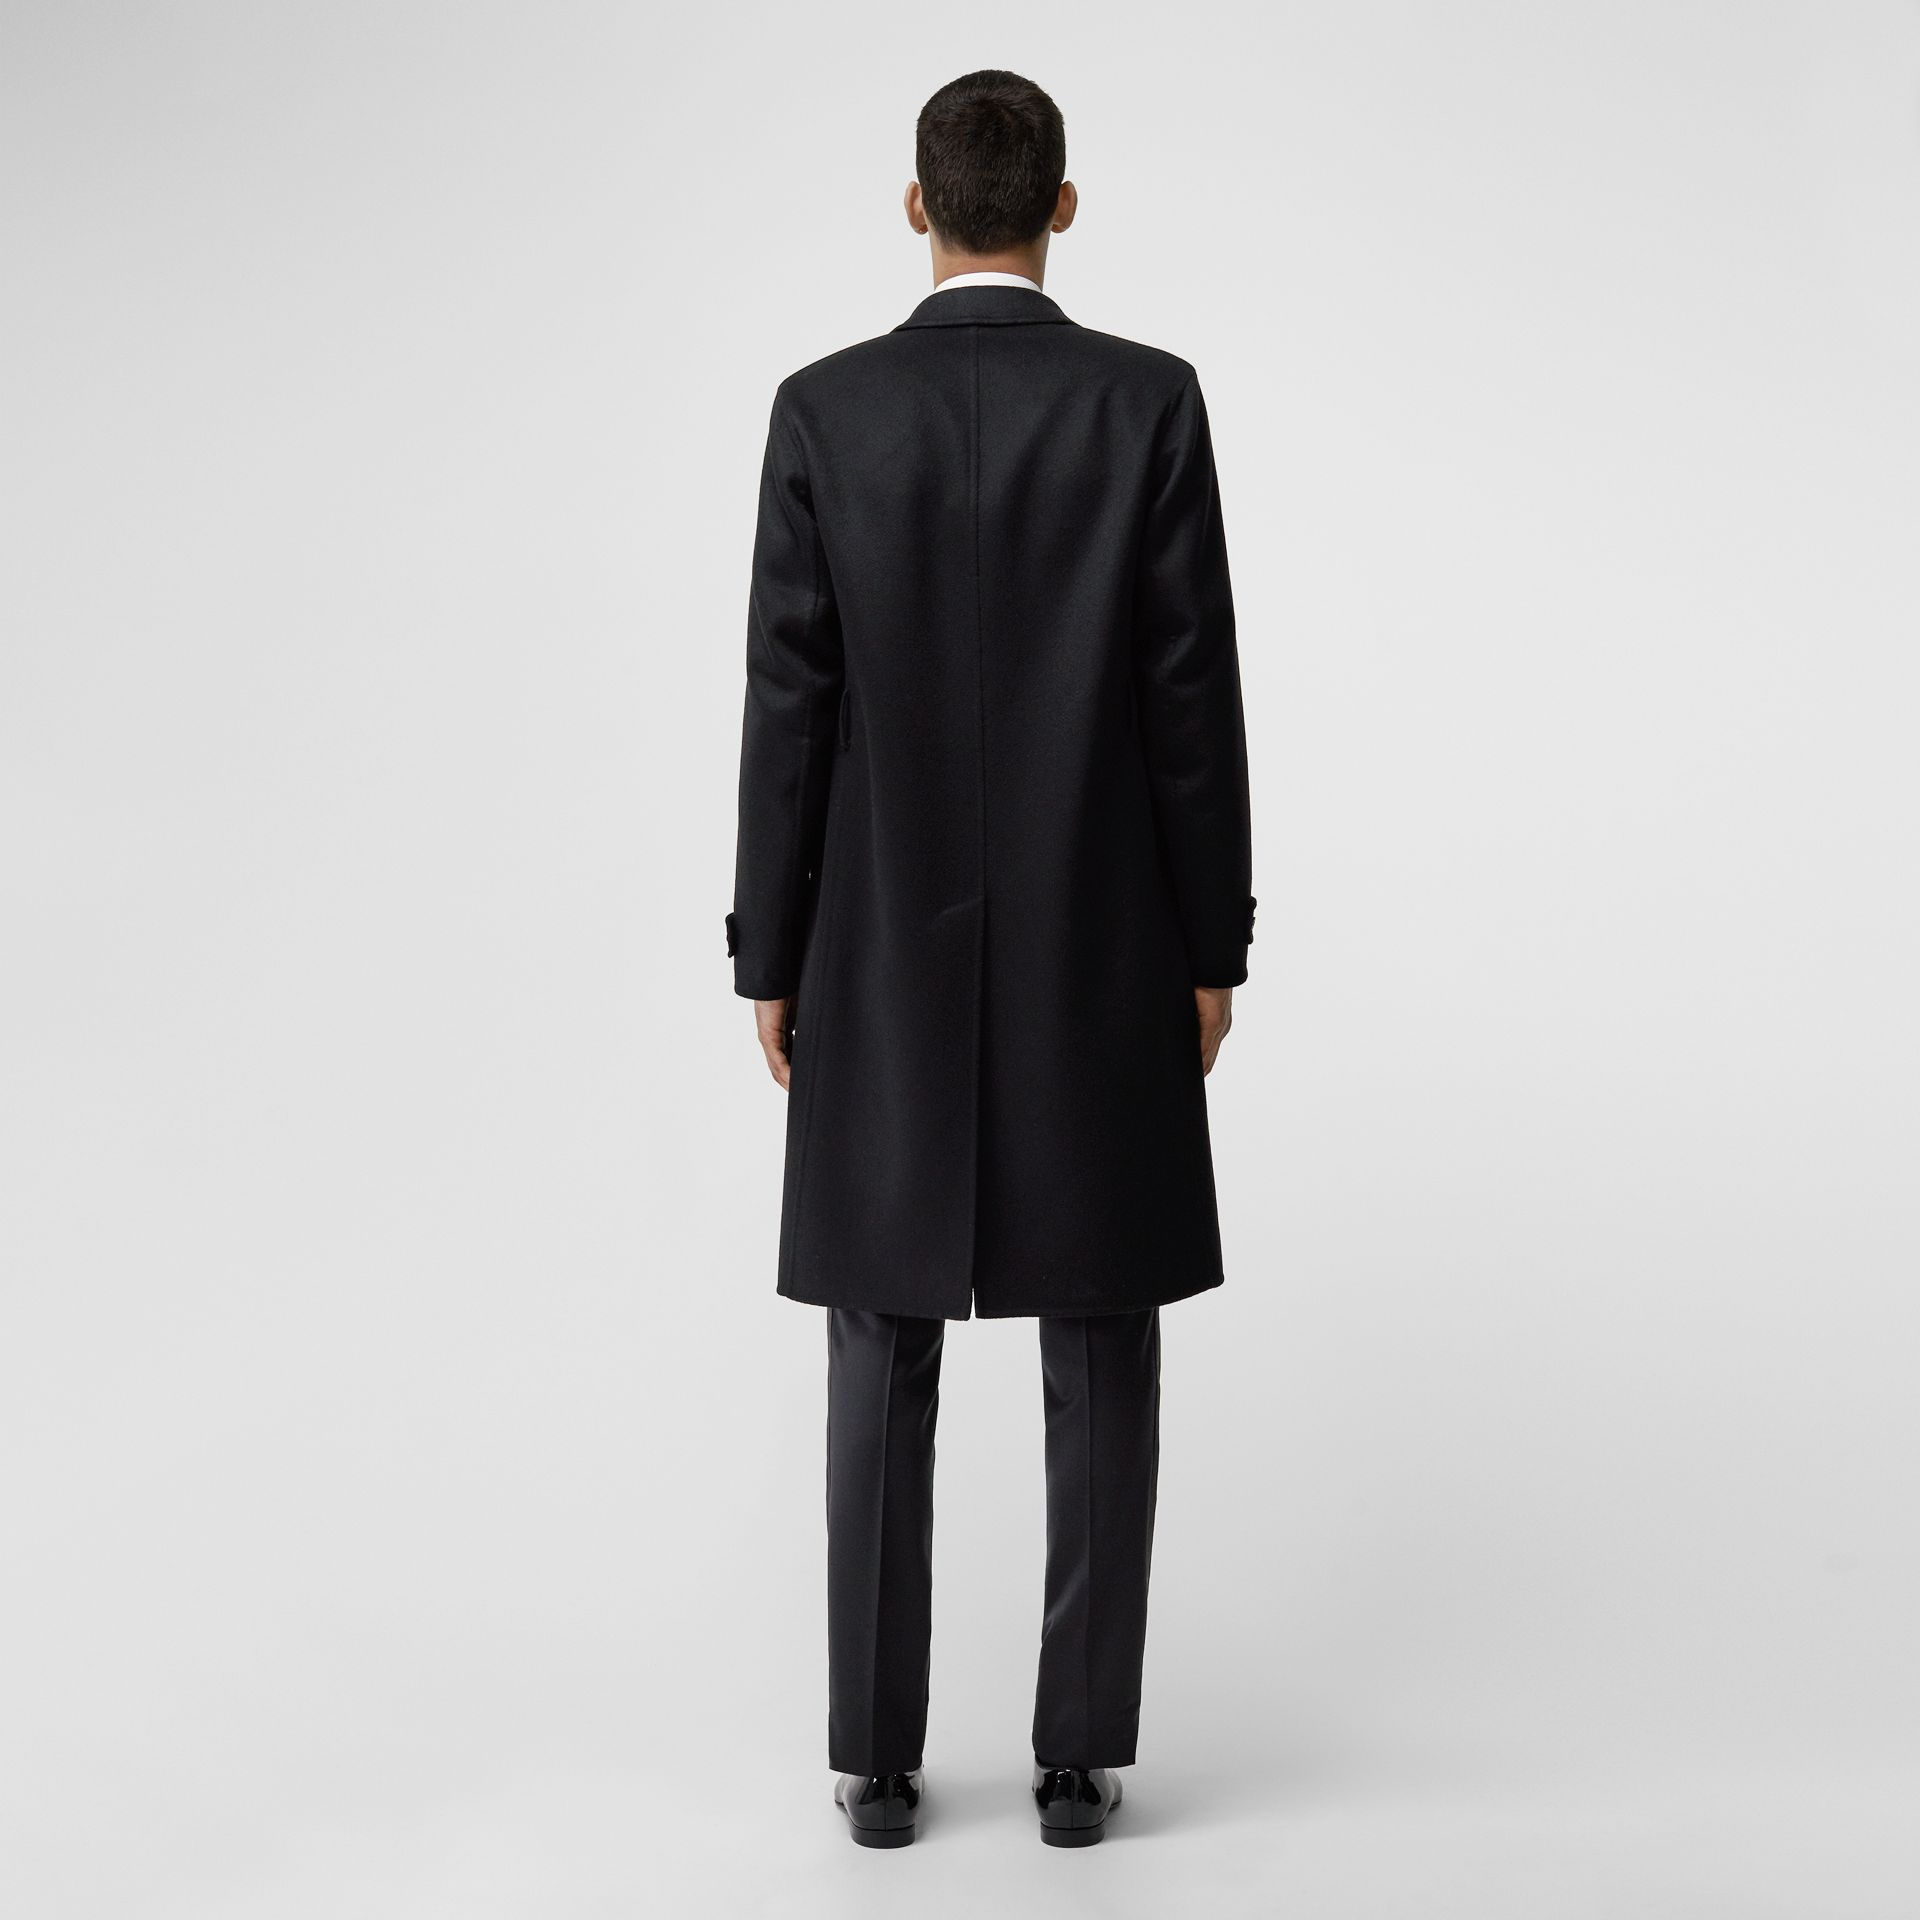 Cashmere Tailored Coat in Black - Men | Burberry United States - gallery image 2